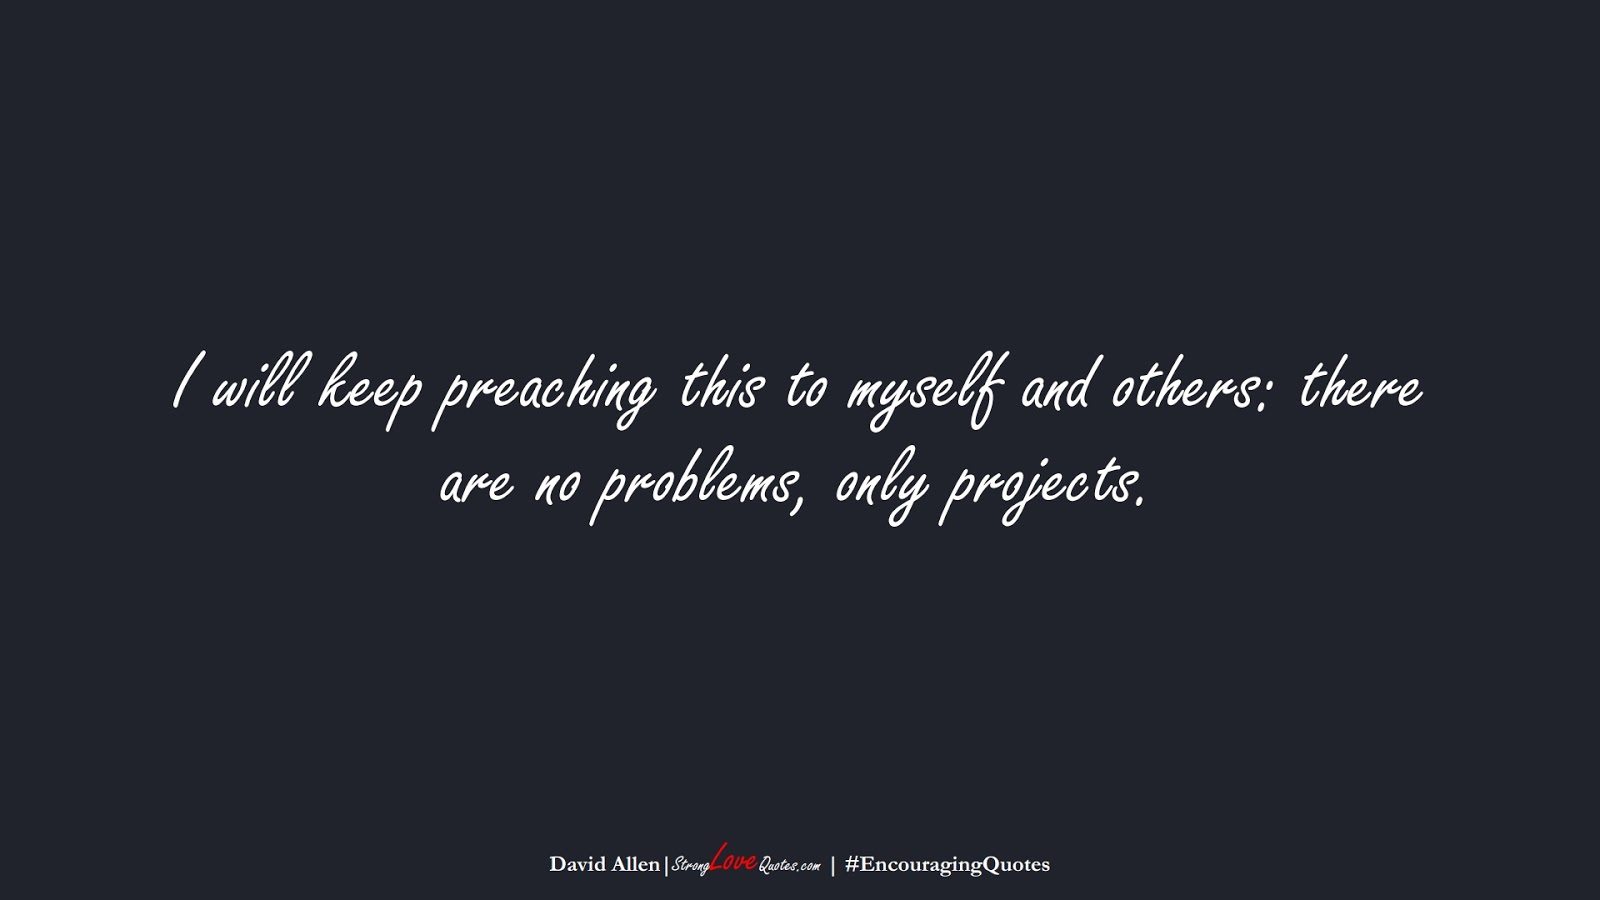 I will keep preaching this to myself and others: there are no problems, only projects. (David Allen);  #EncouragingQuotes